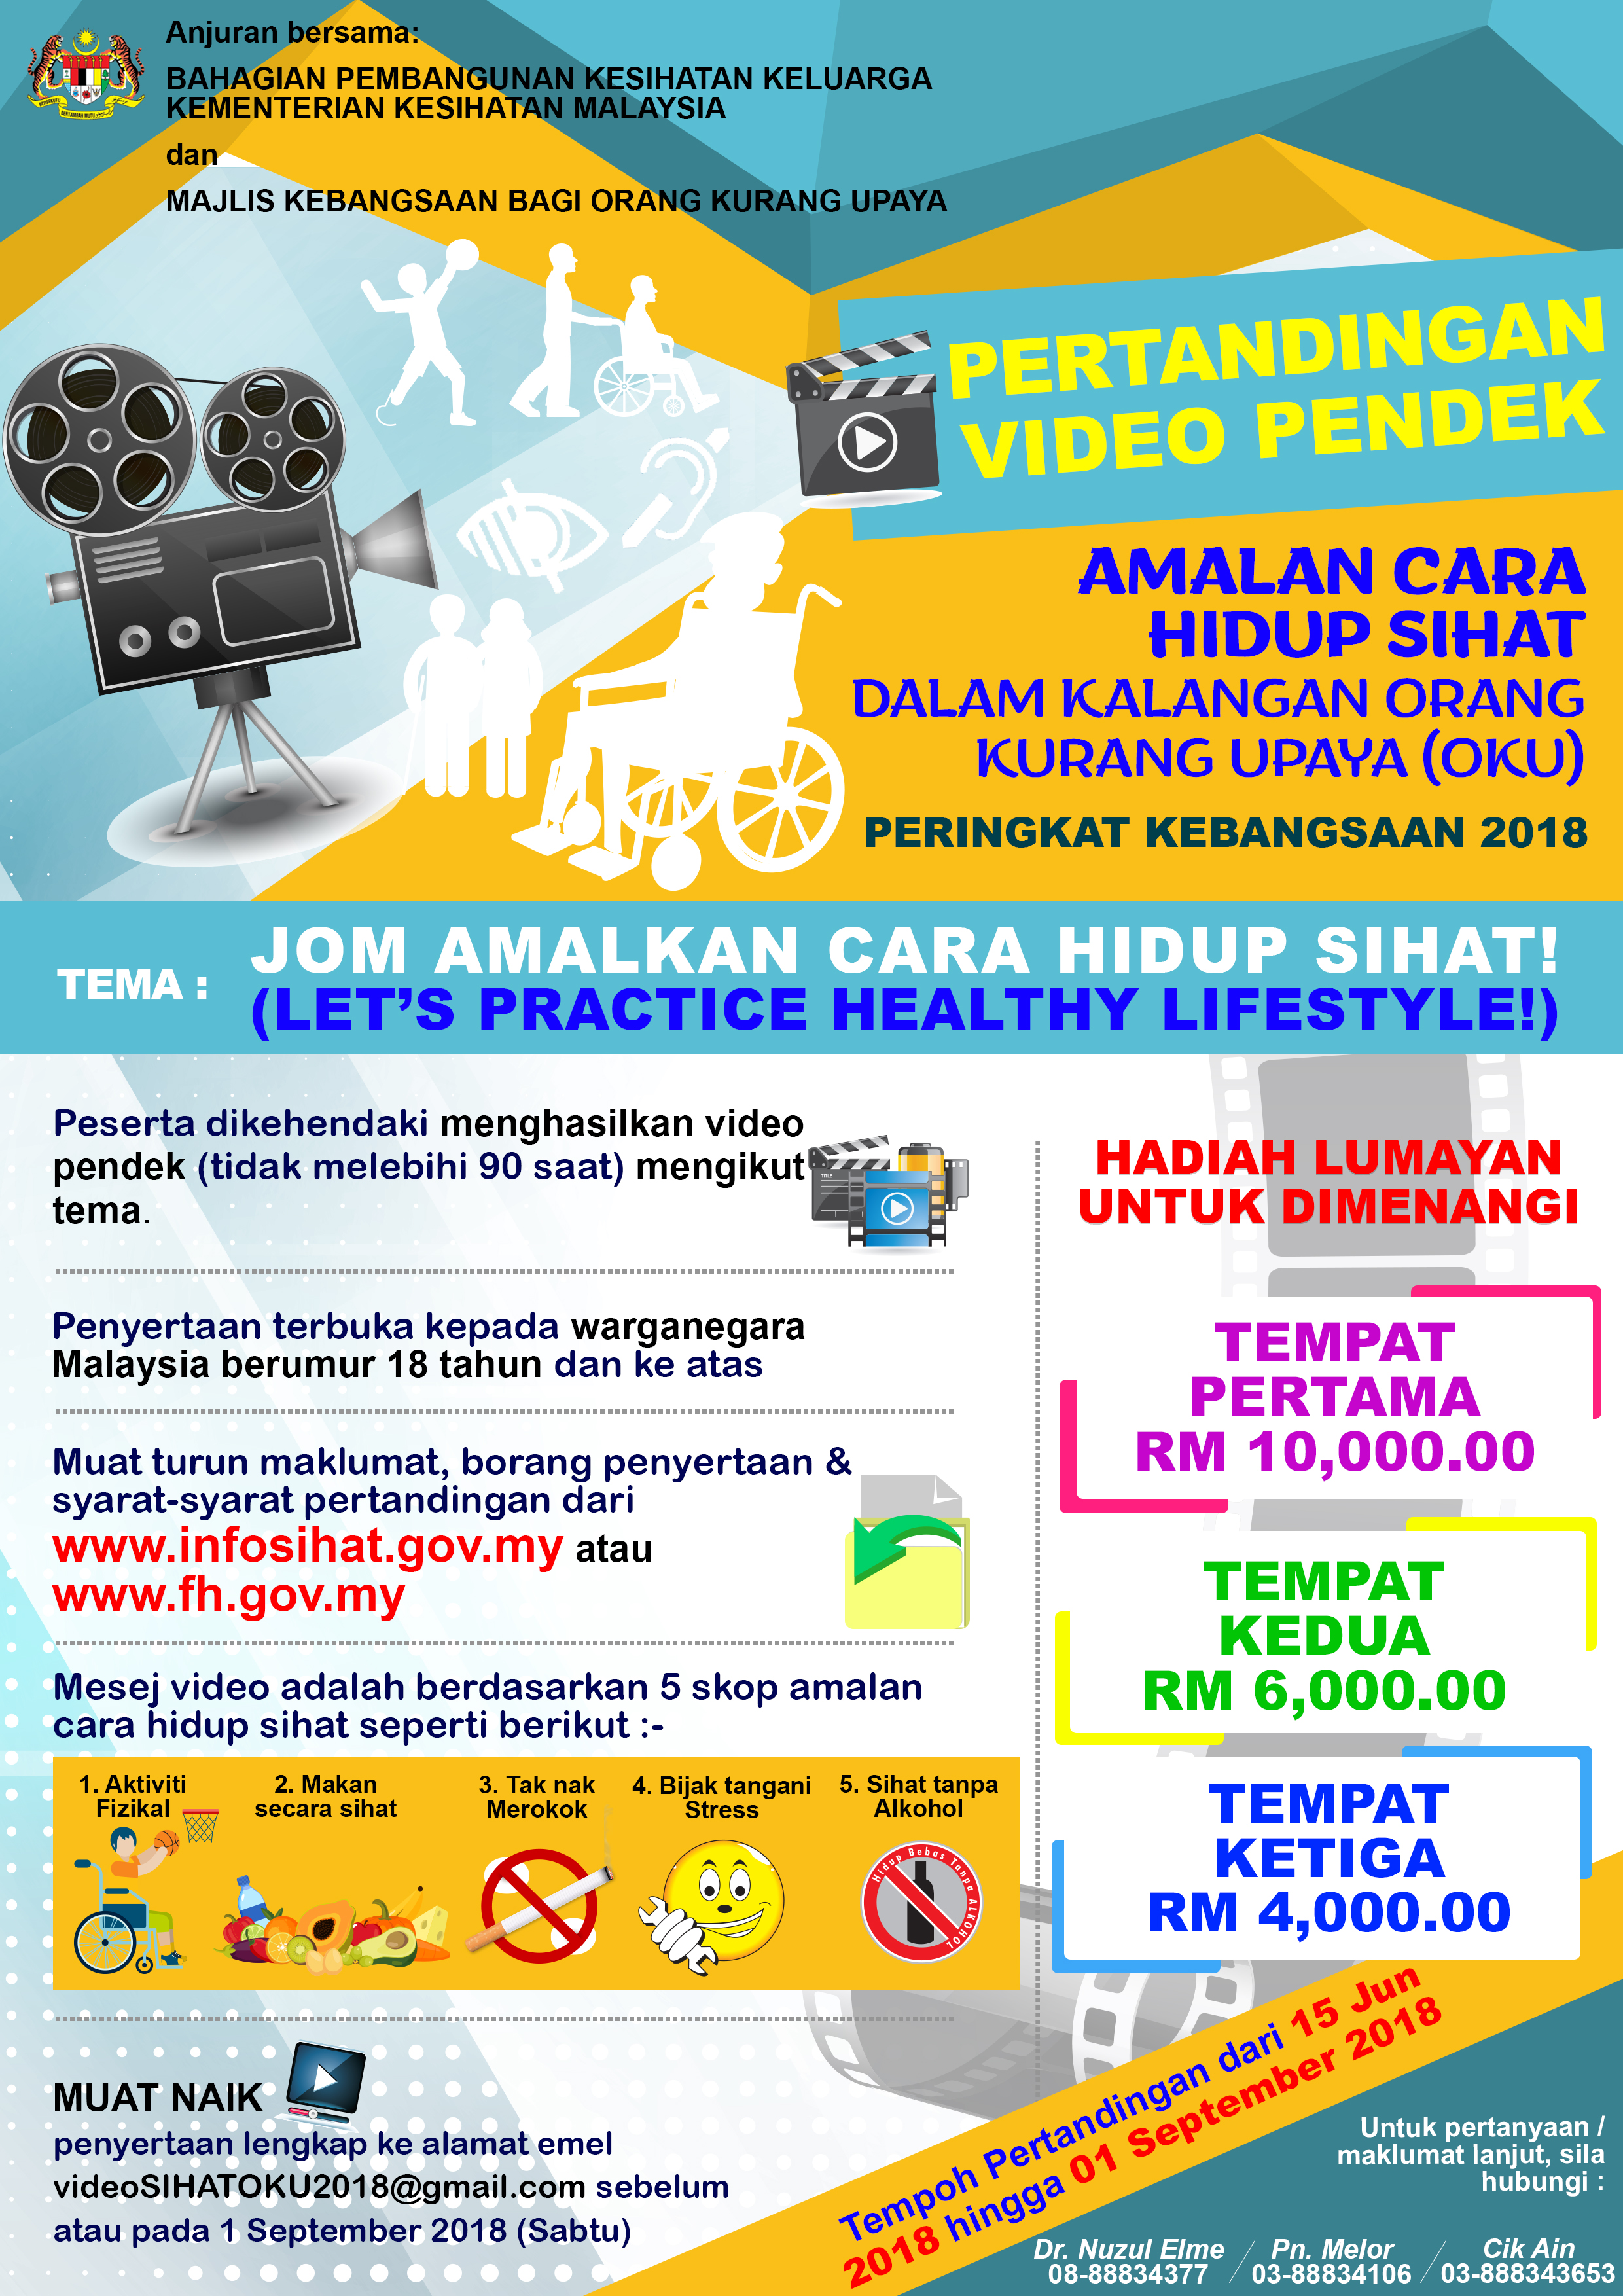 Pertandingan-Video-Pendek-2018-1